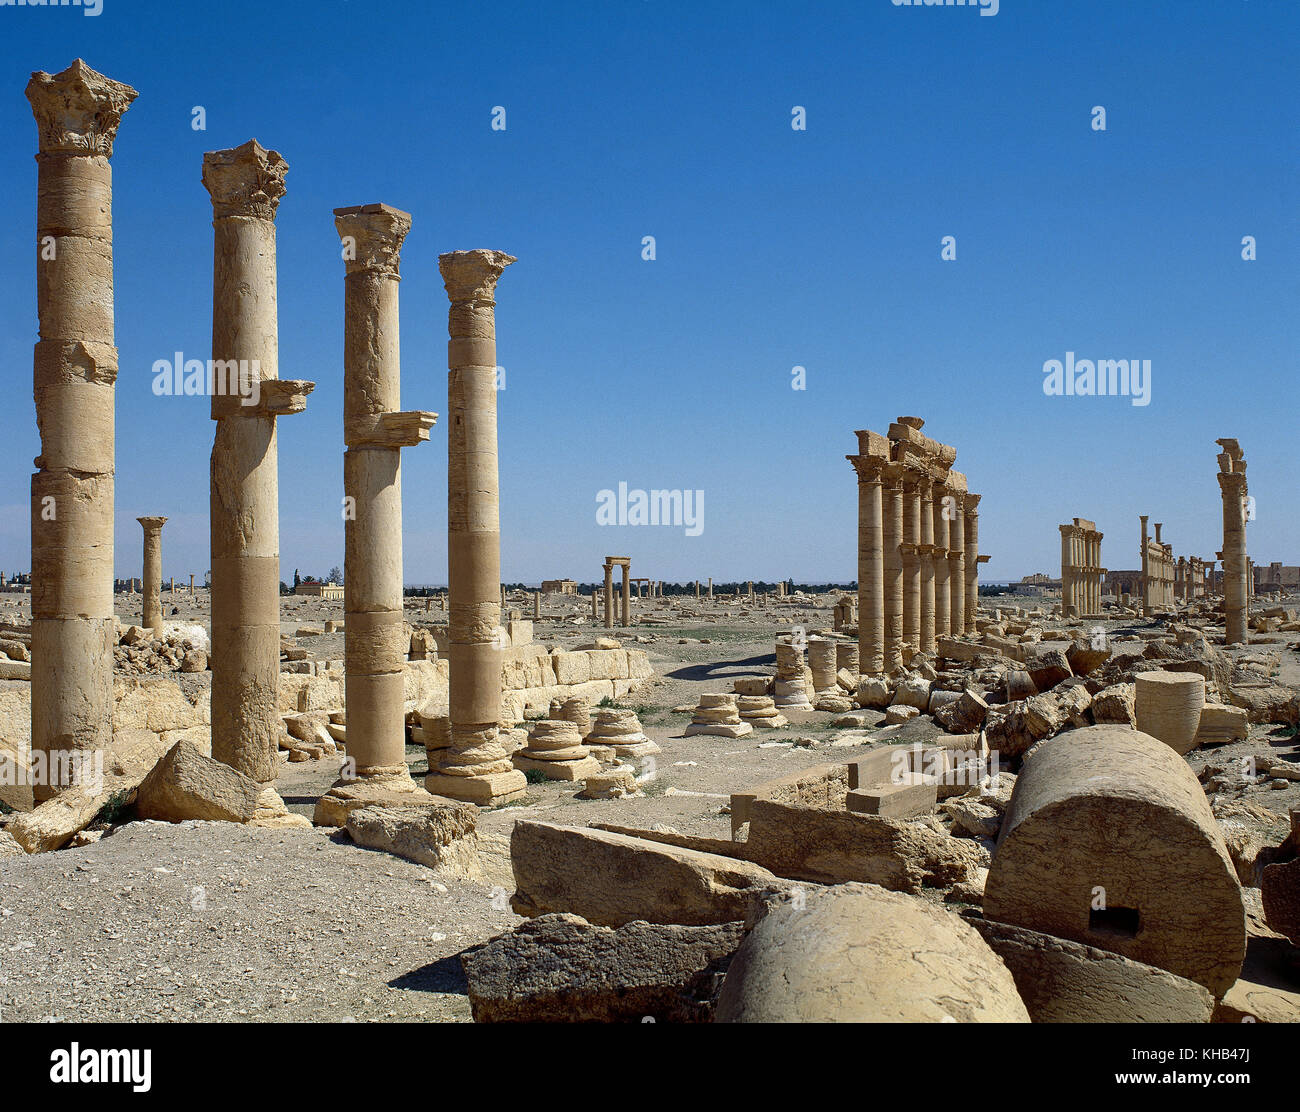 Syria. Palmyra city. The Great Colonnade. Roman Empire ruins. Tadmur, Homs. Photo before Syrian Civil War. Stock Photo